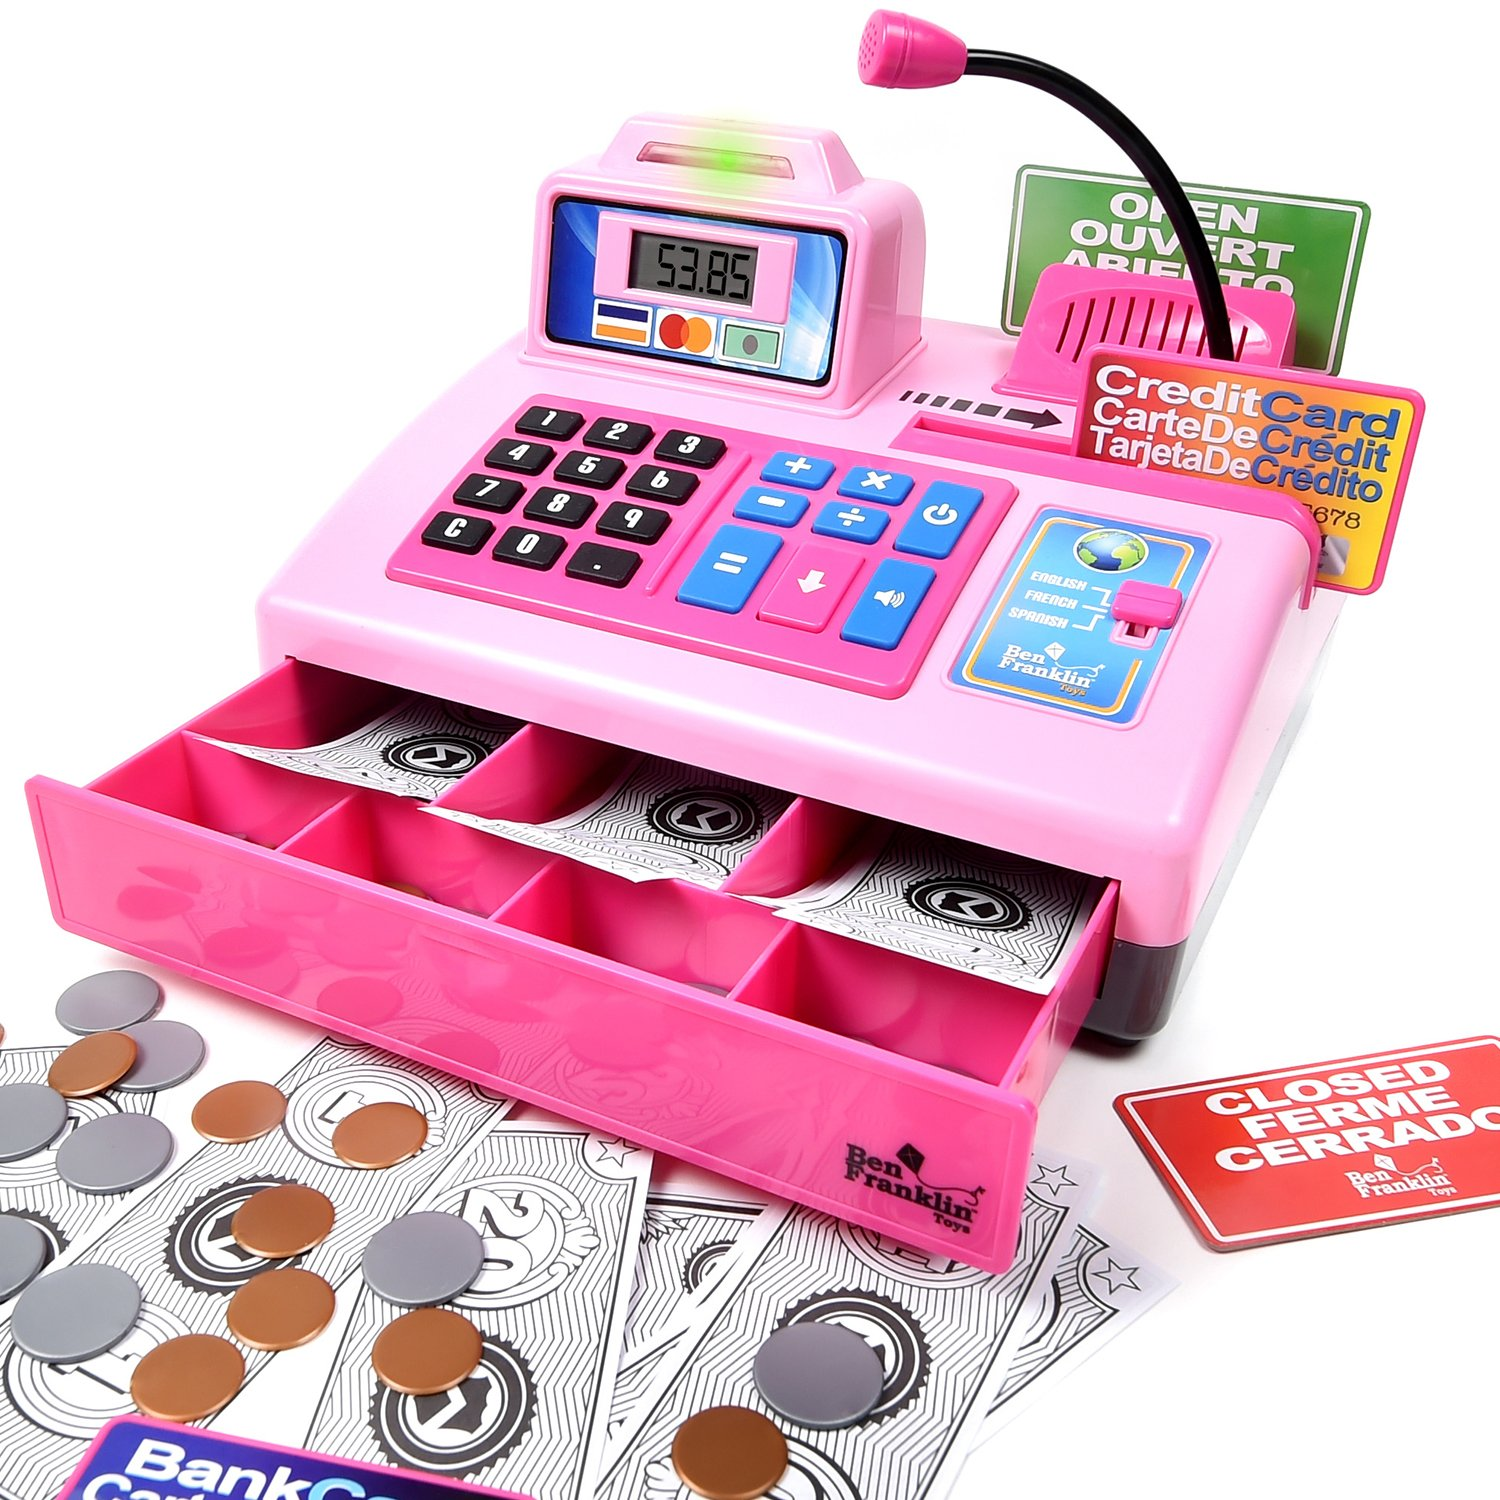 Ben Franklin Toys Talking Toy Cash Register - store learning play set with 3 languages, paging microphone, credit card, bank card and play money, Pink by Ben Franklin Toys